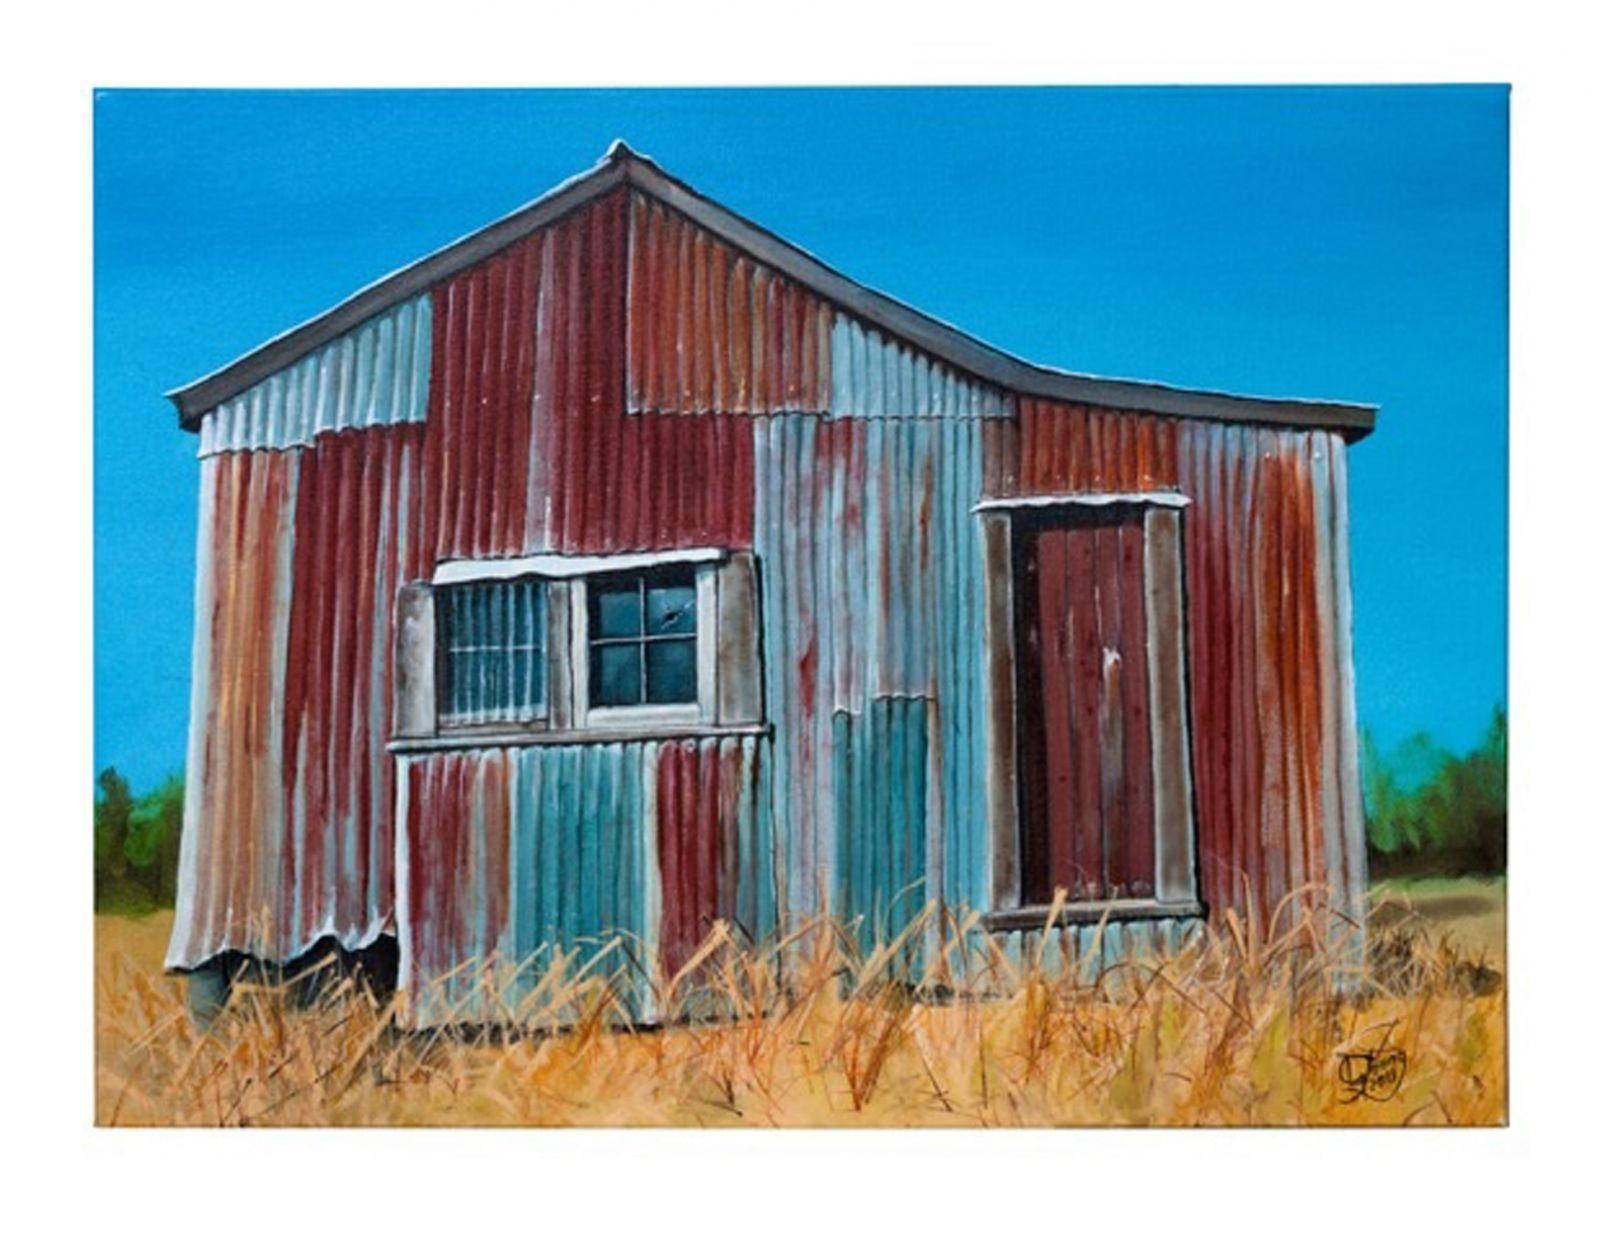 Paddy's Shed Prints - grahamyoungartist.com - Original Artwork and Prints by New Zealand Artist Graham Young